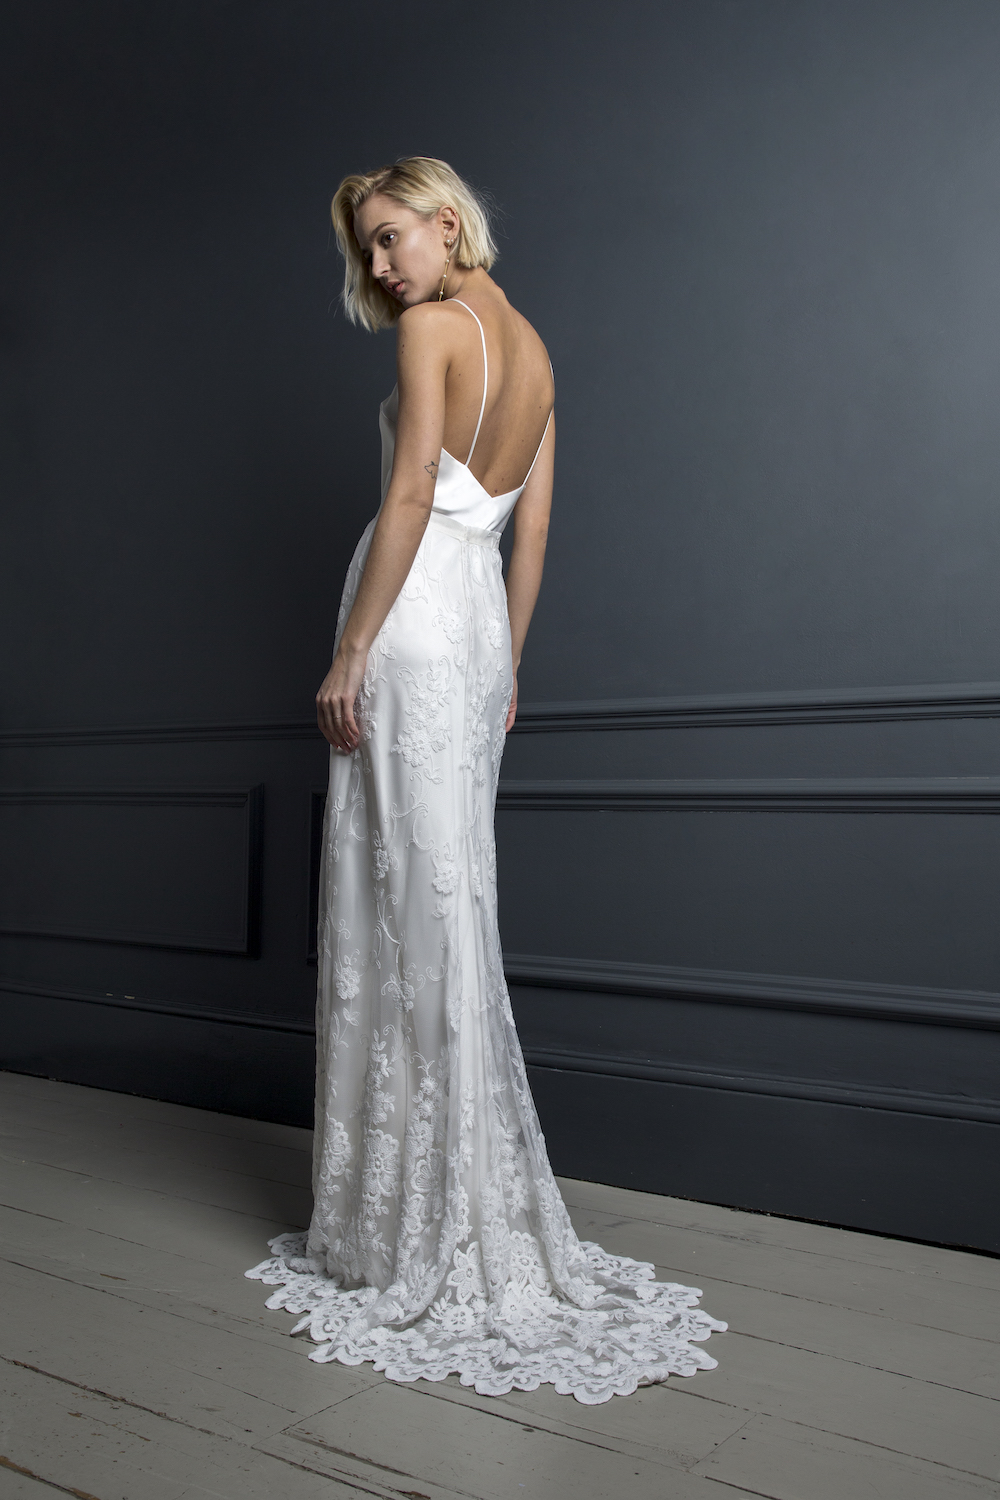 CHARLIE SKIRT & IRIS SLIP | WEDDING DRESS BY HALFPENNY LONDON